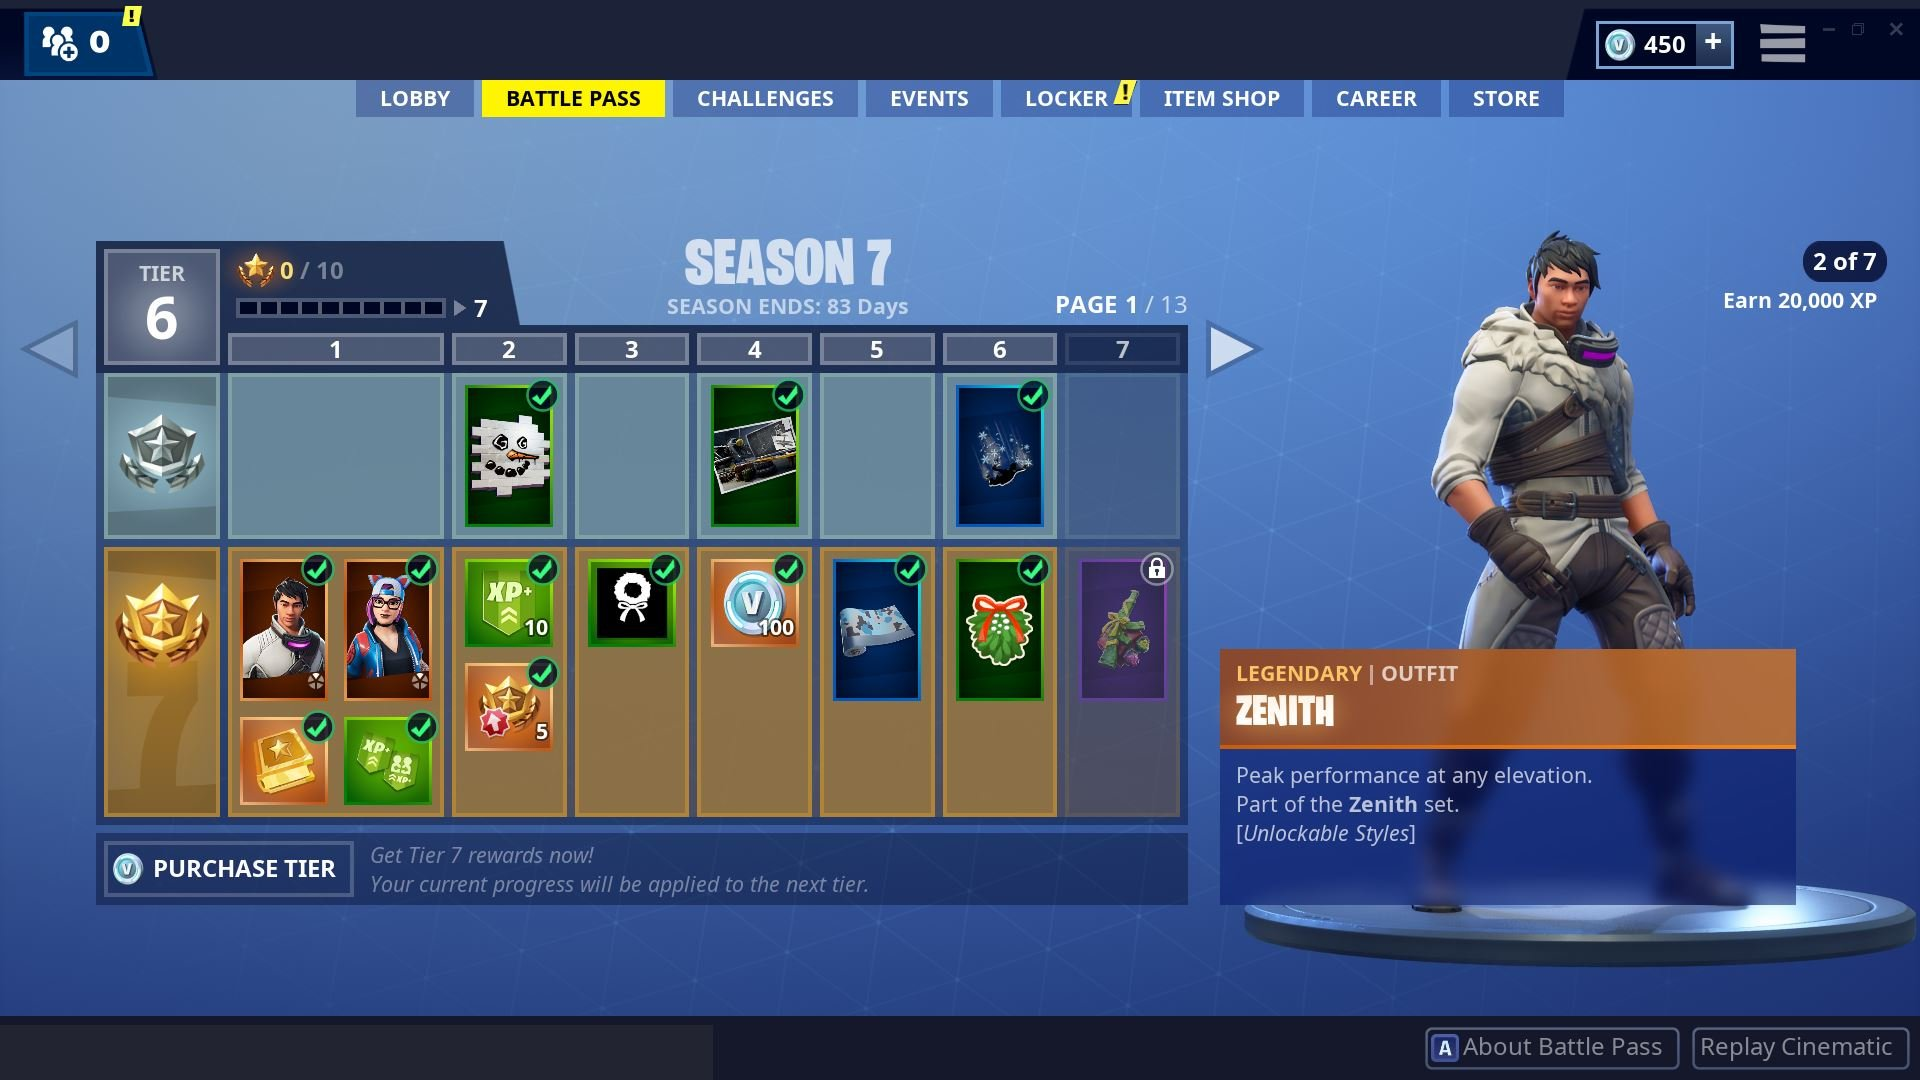 Fortnite Season 7 Battle Pass Page 1